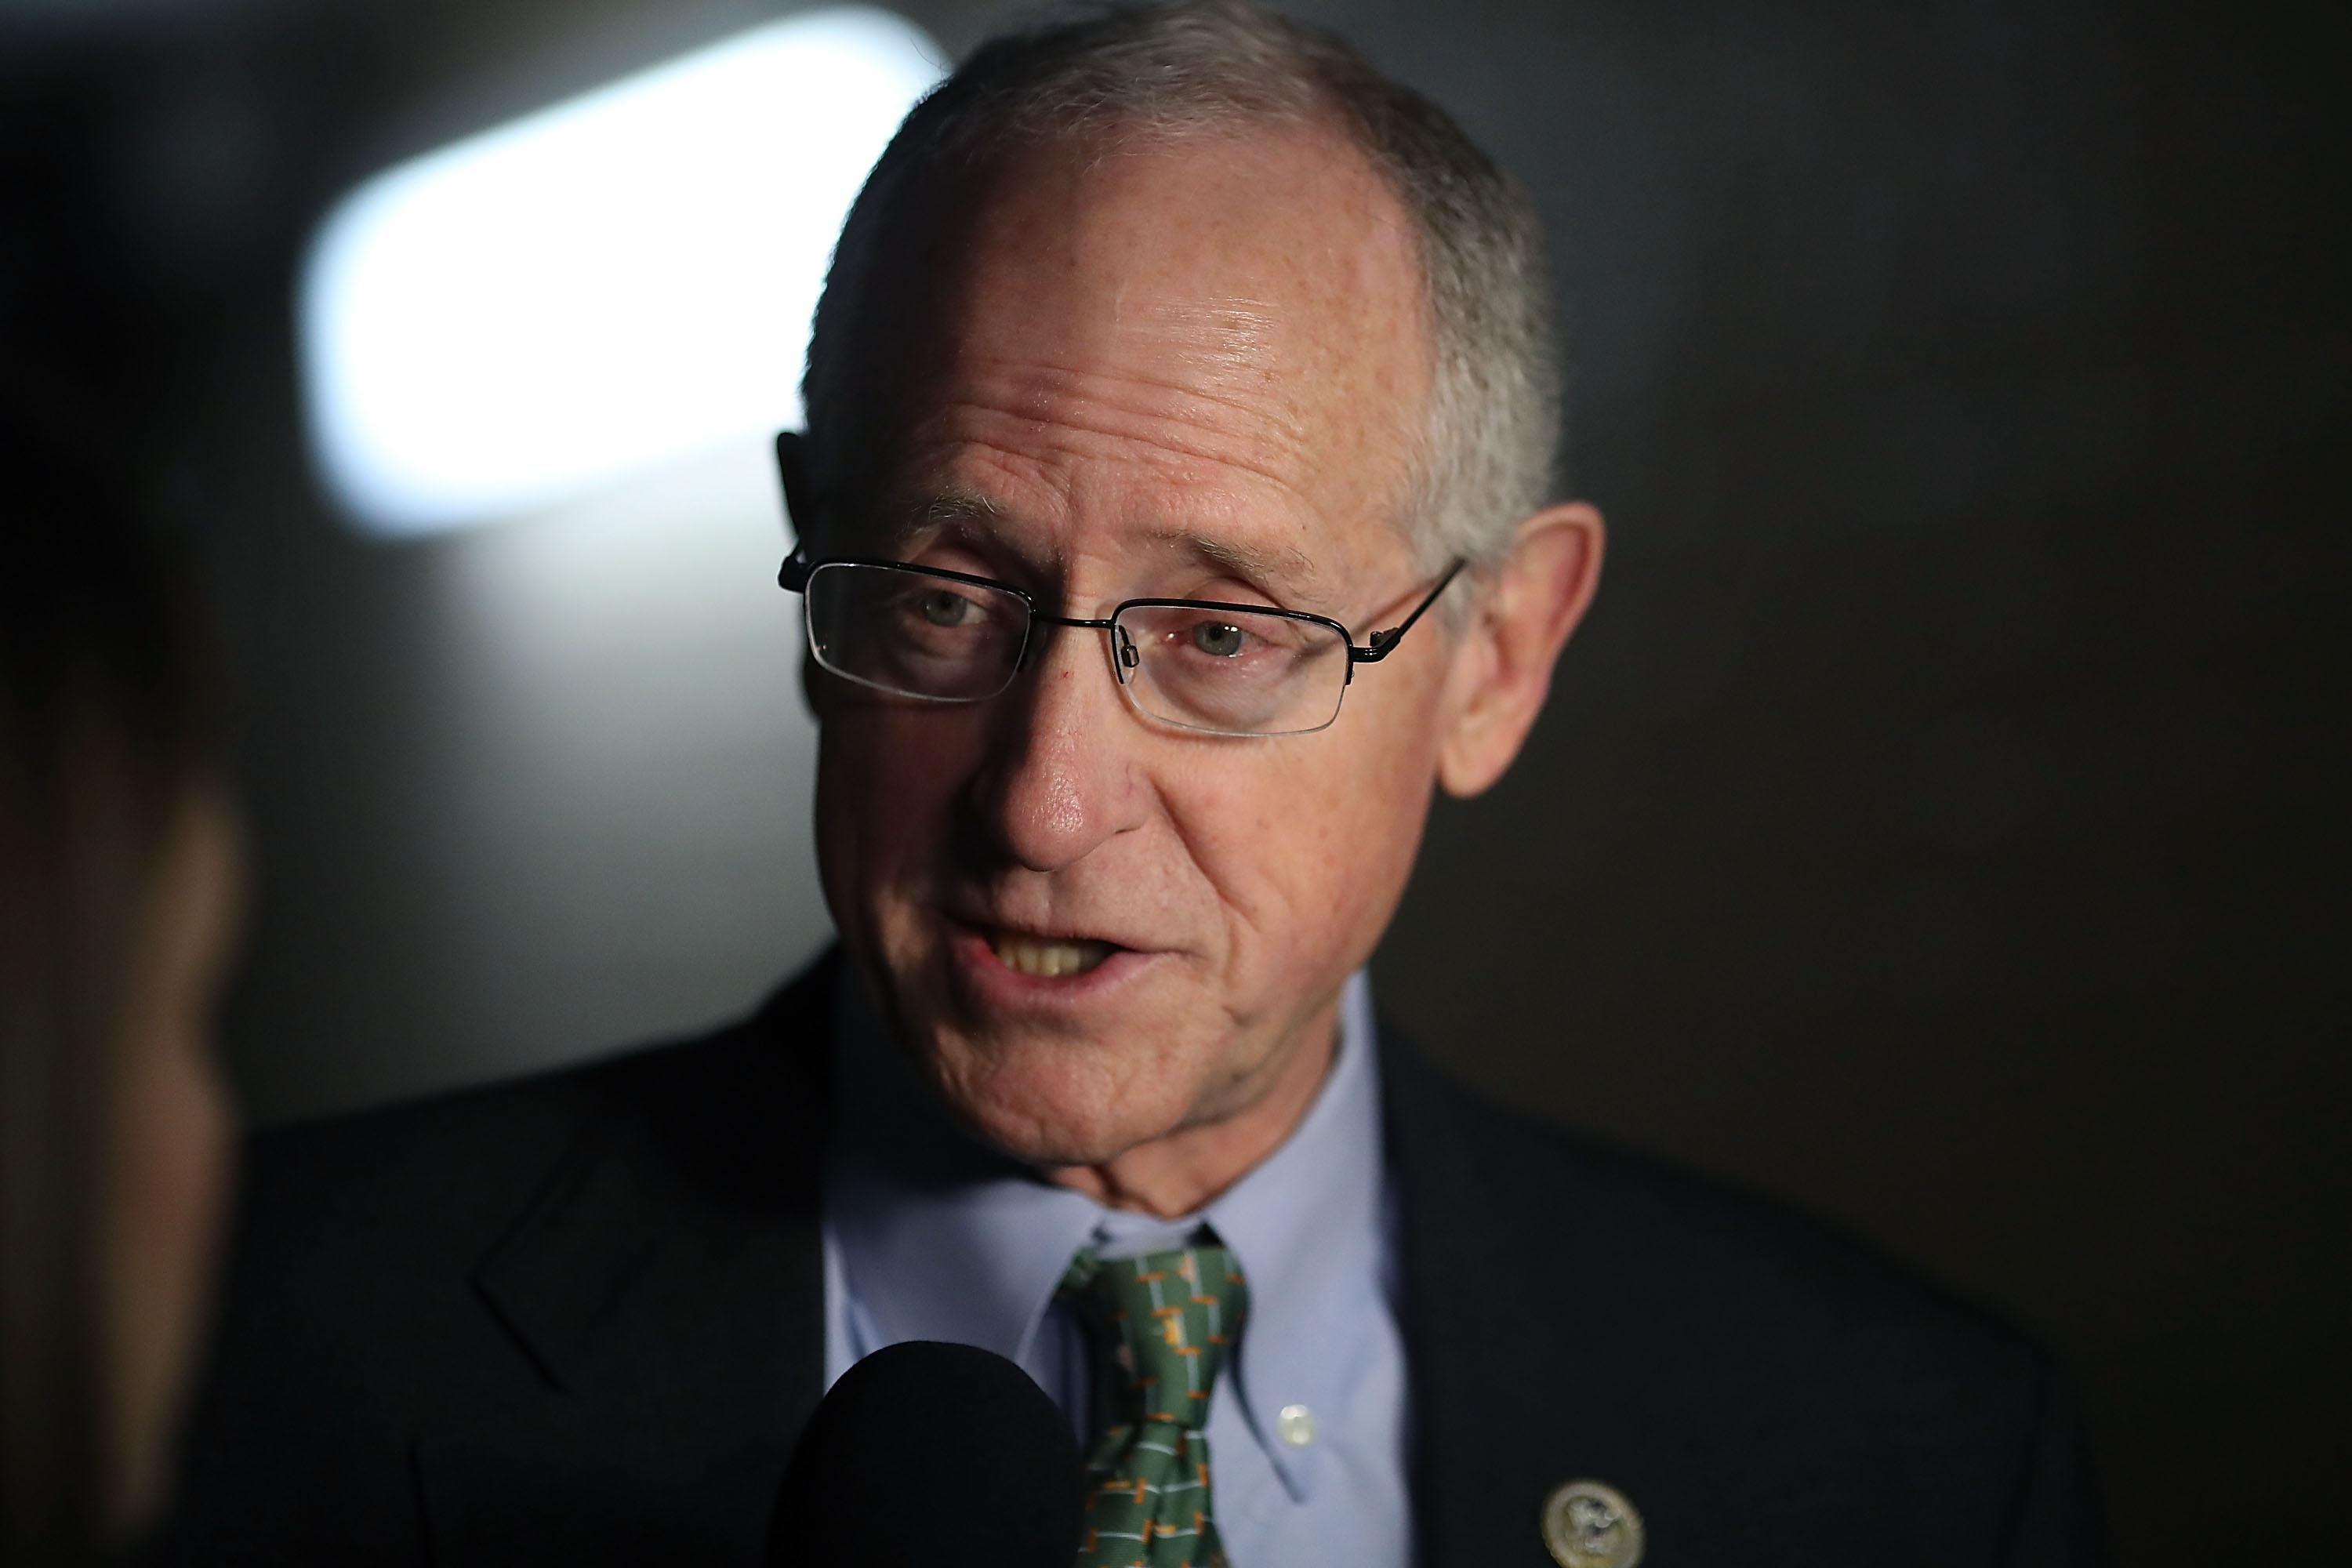 Rep. Mike Conaway speaks to the media after attending a meeting with House GOP members.